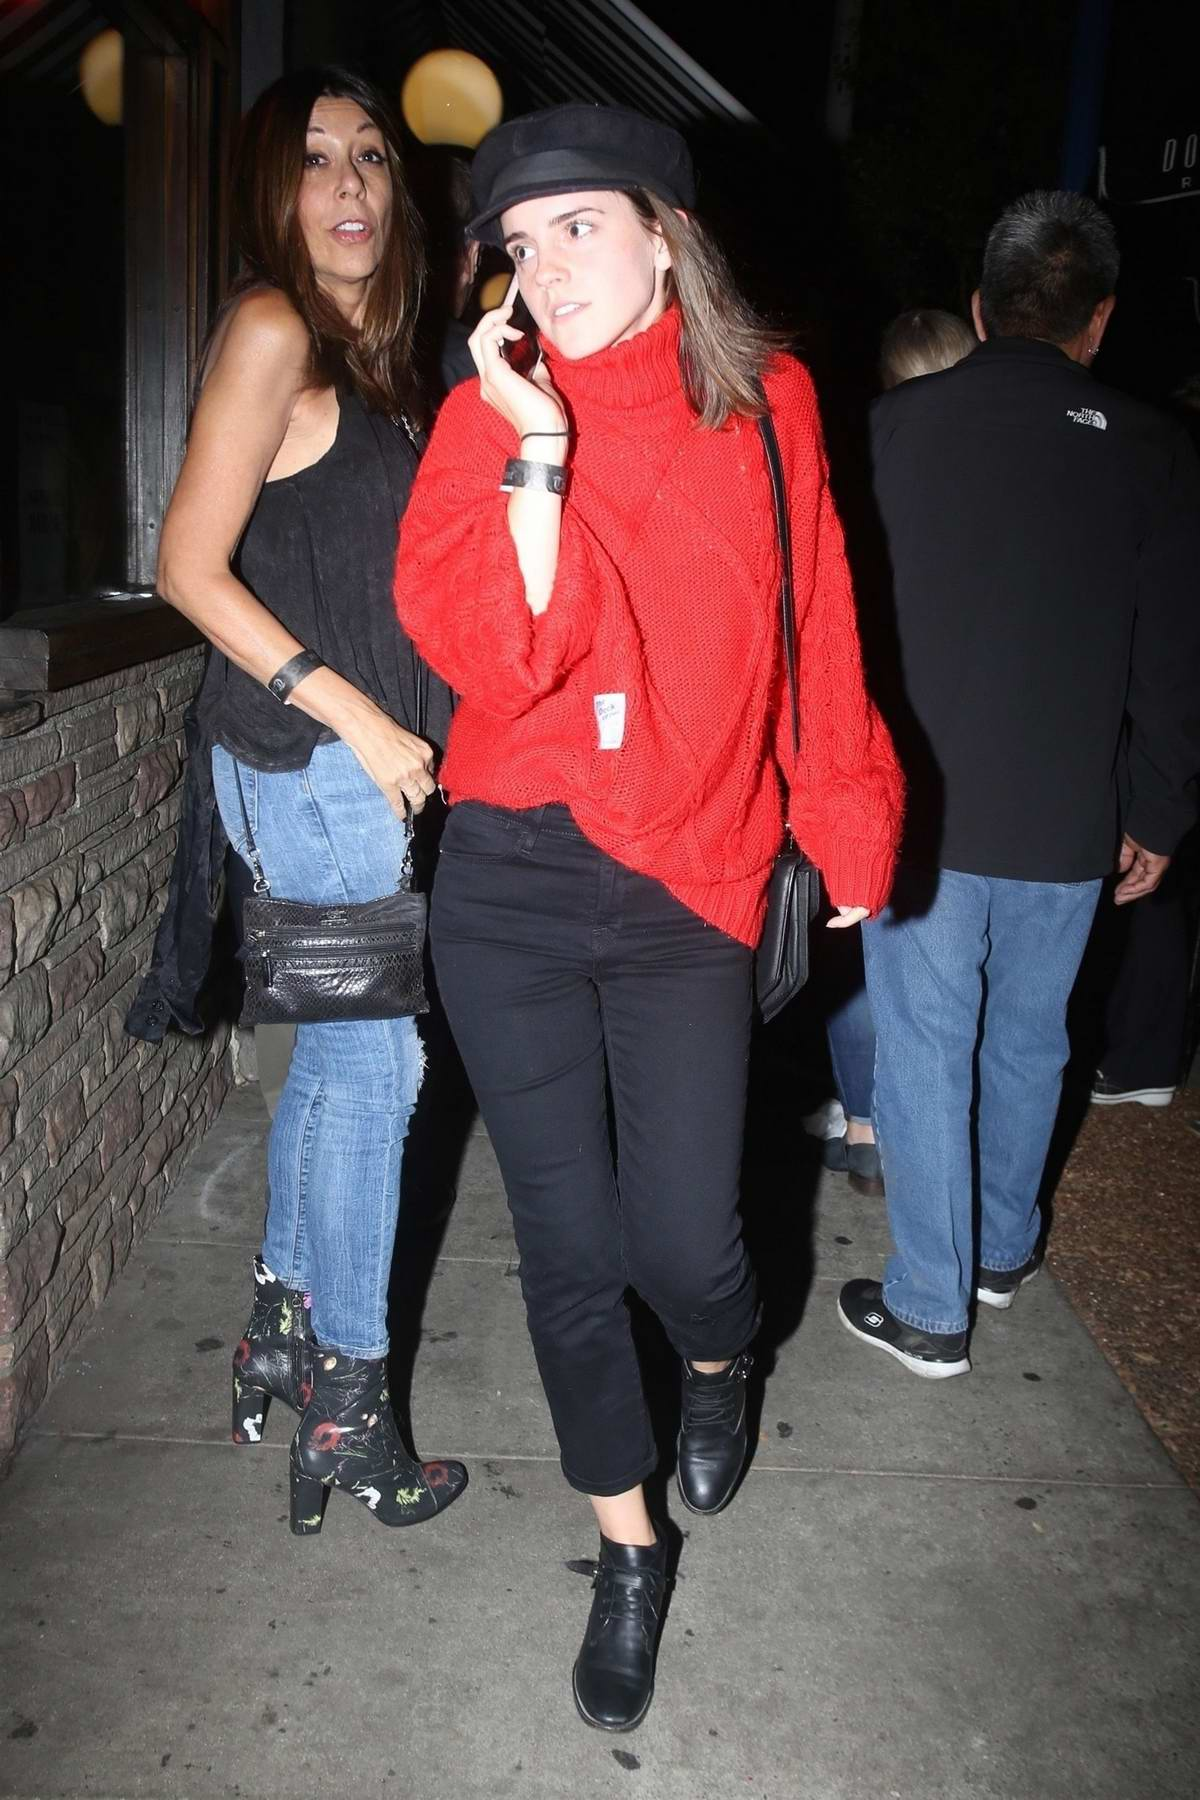 Emma Watson in a red turtleneck arrives at Troubadour for a concert in Los Angeles